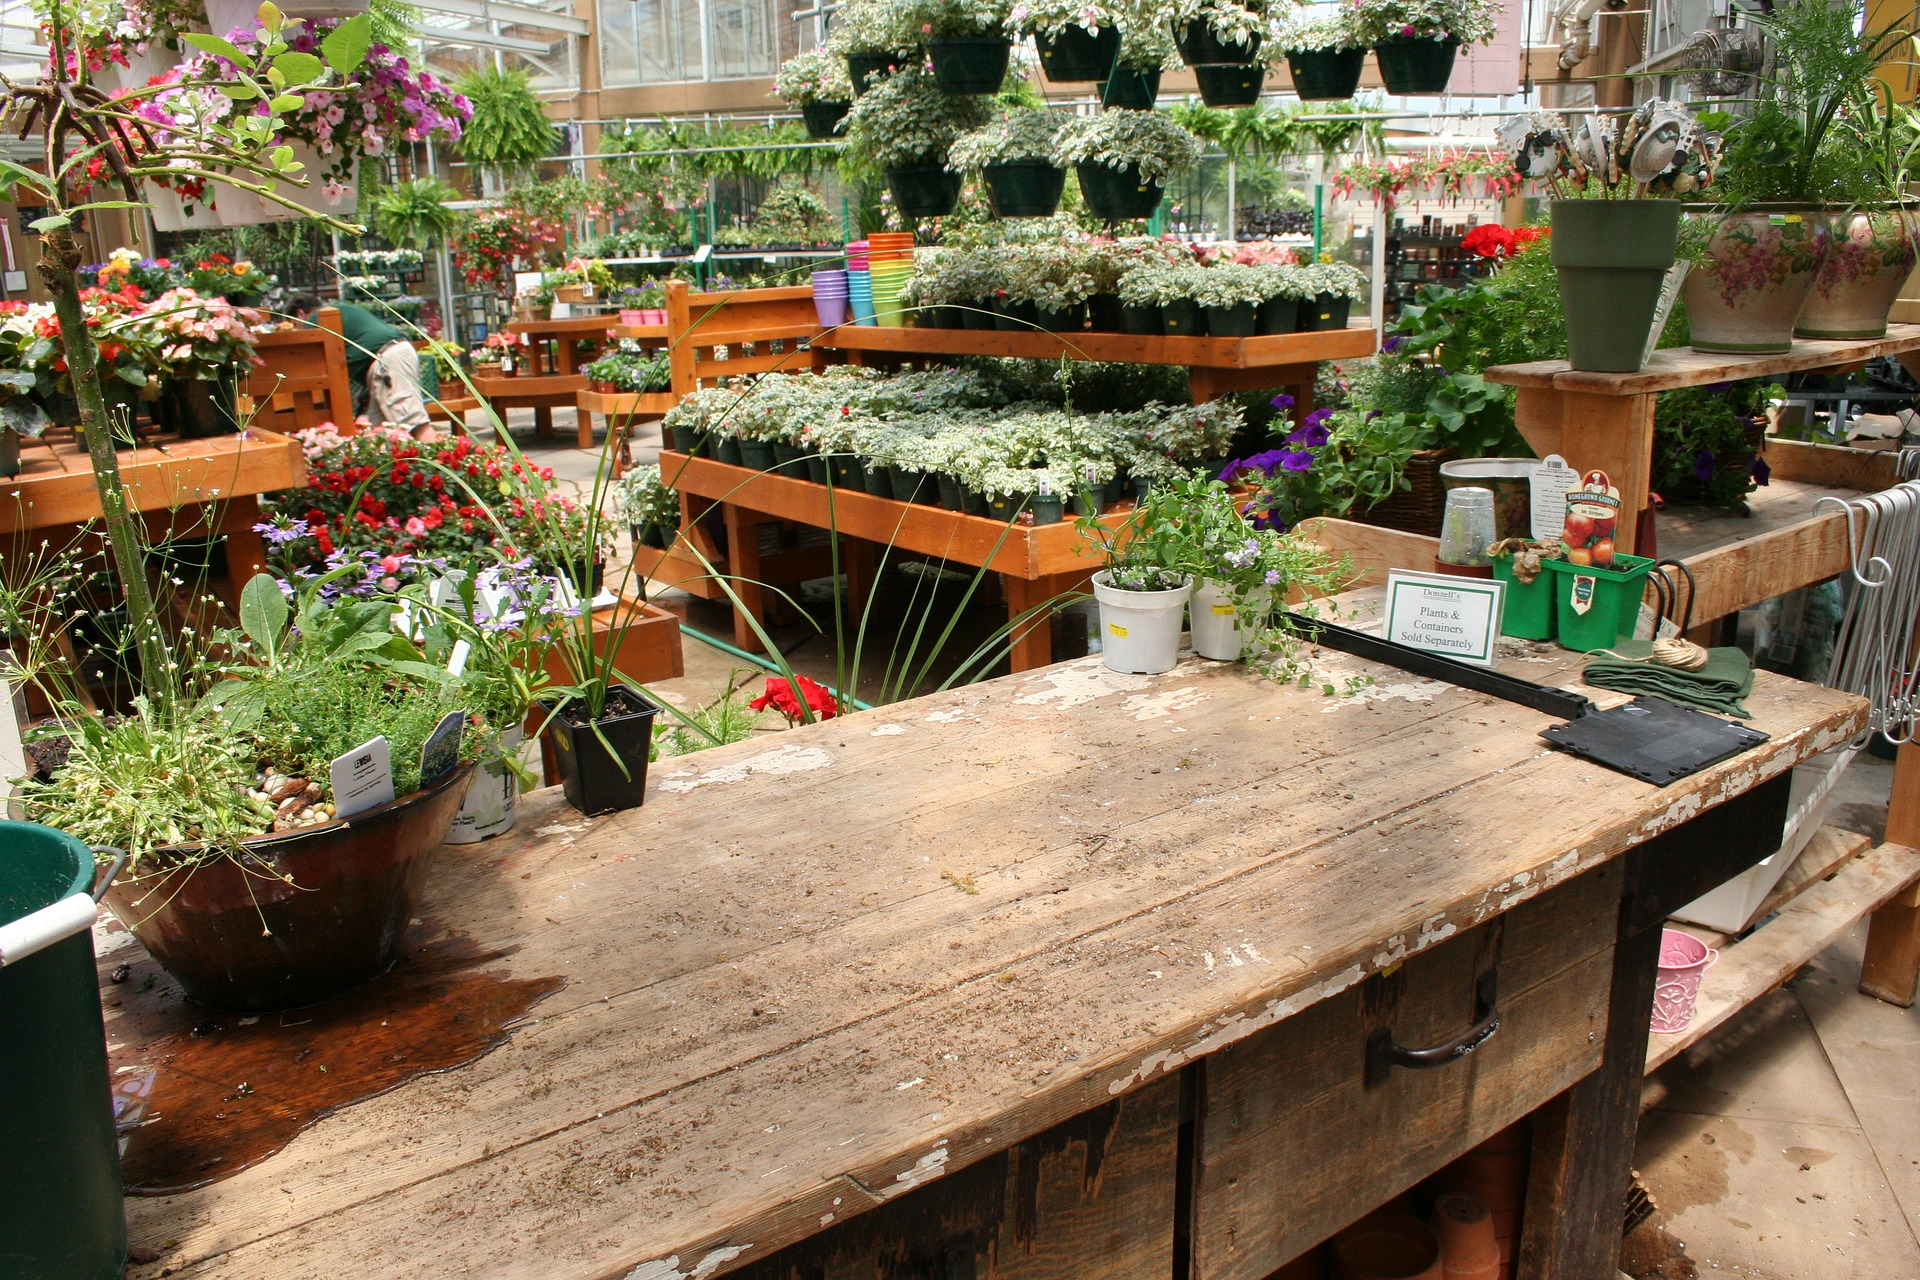 budget friendly options at garden center counter